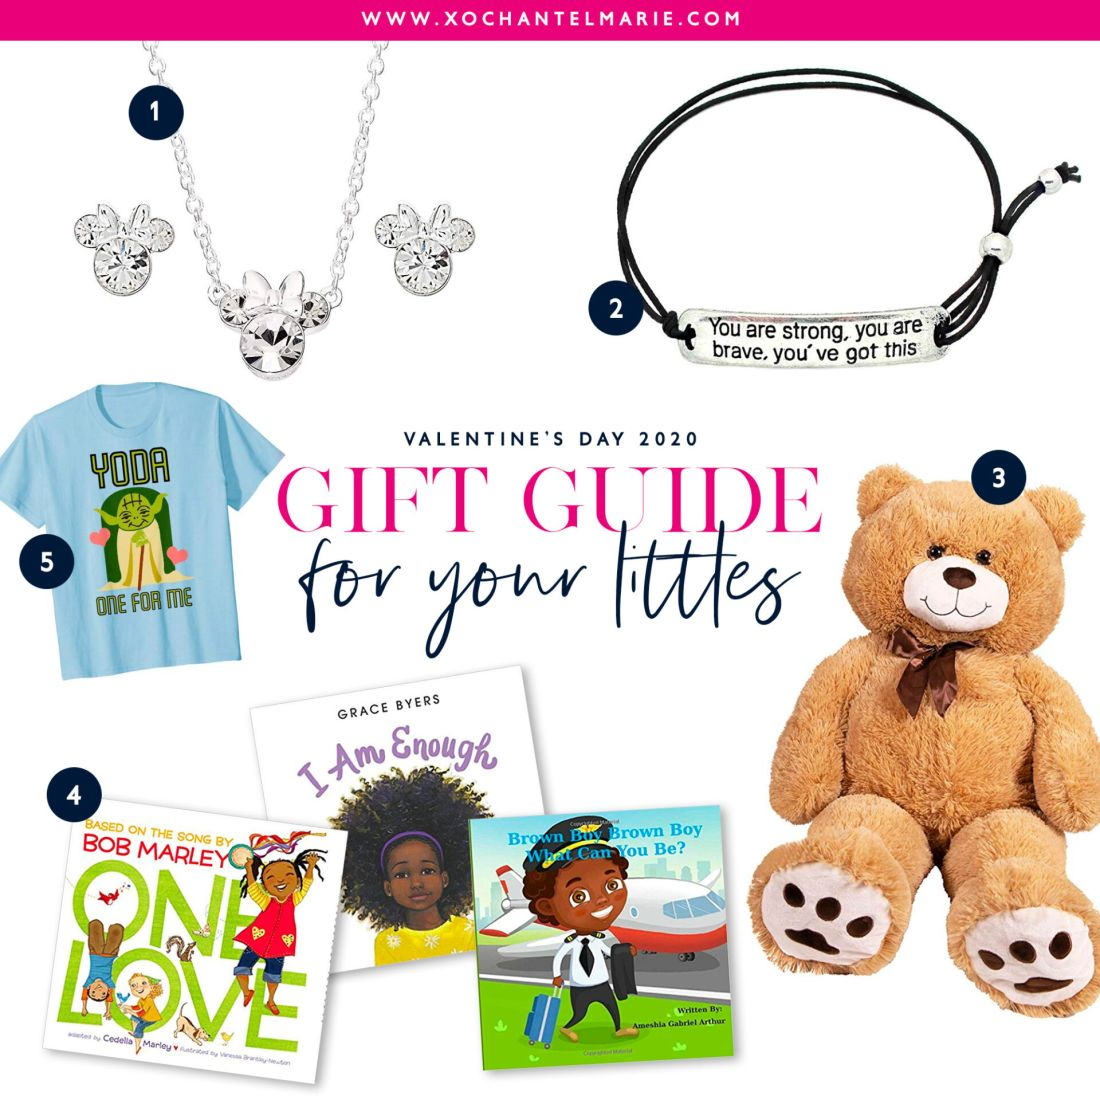 2020 Valentine's Day Gift Guide for kids